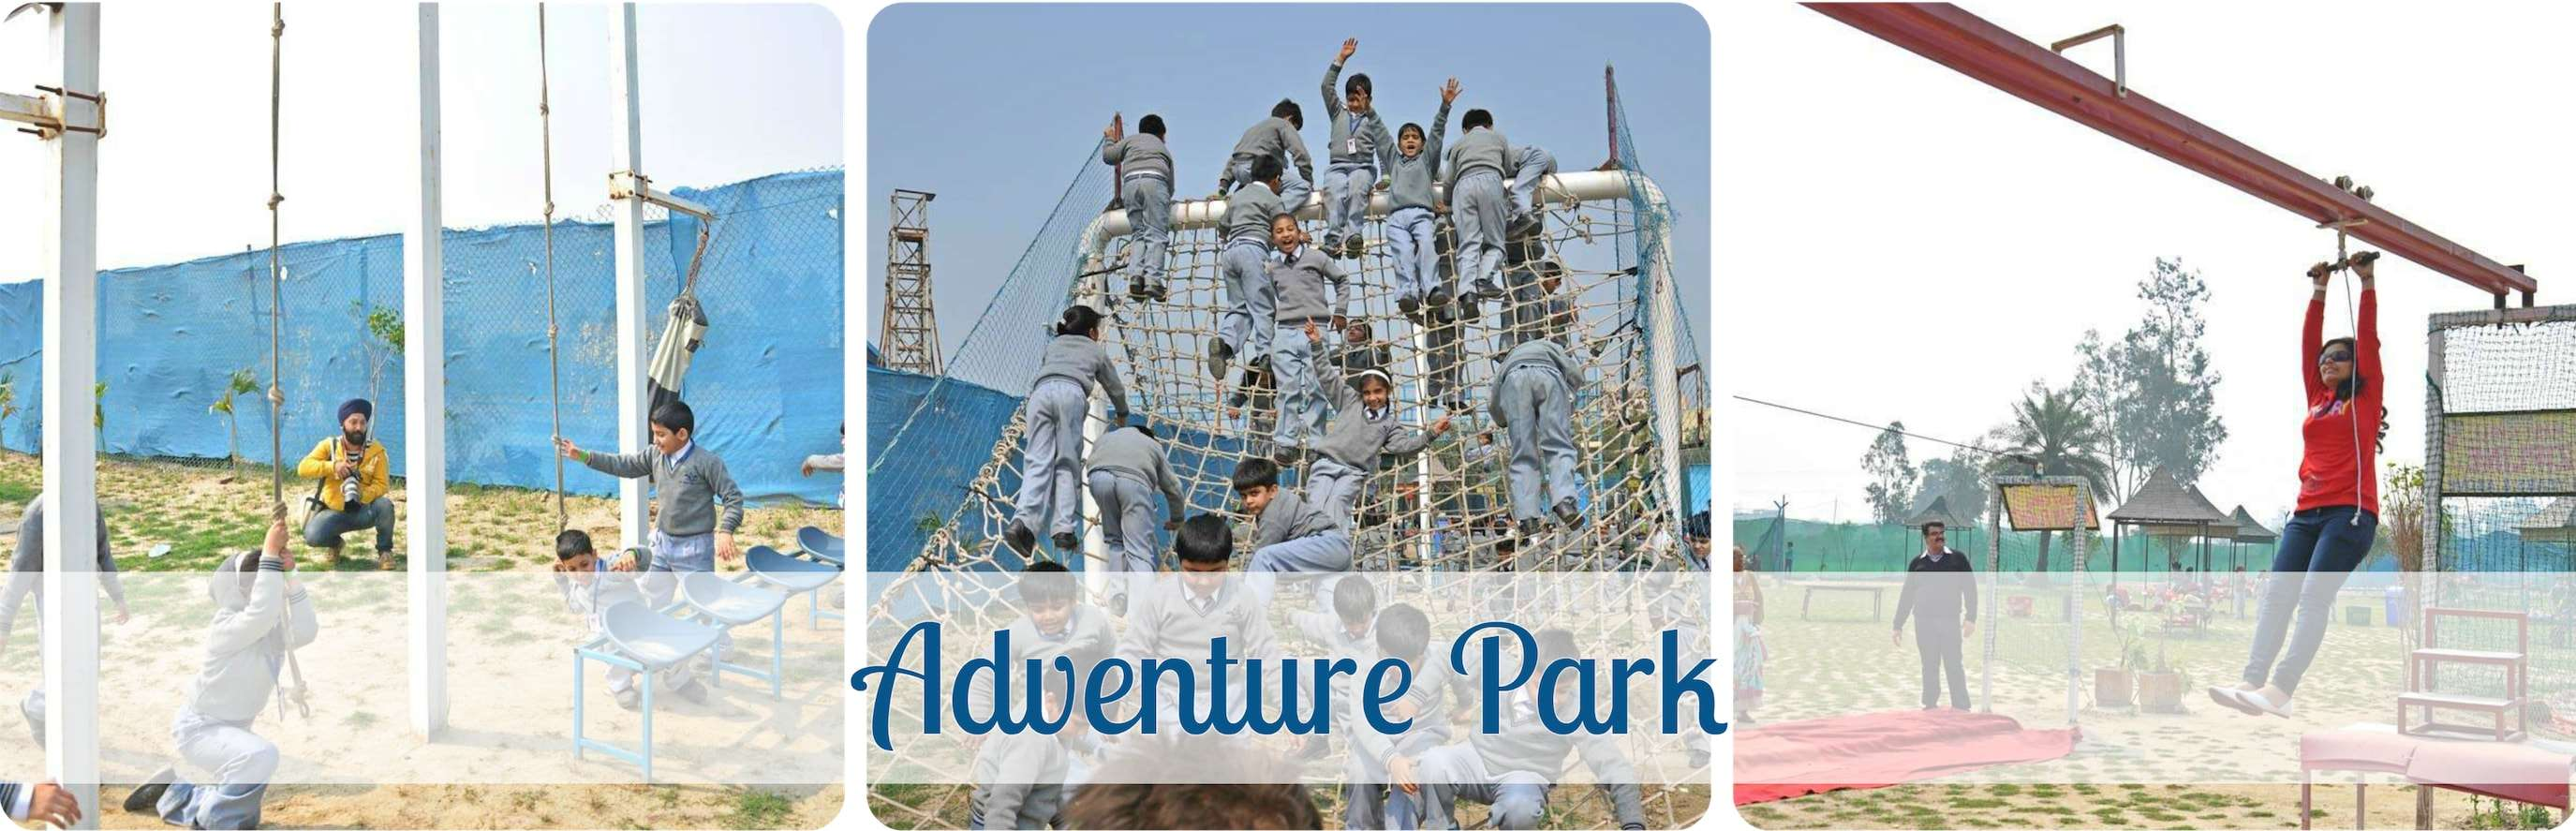 Adventure Park just chill.jpg